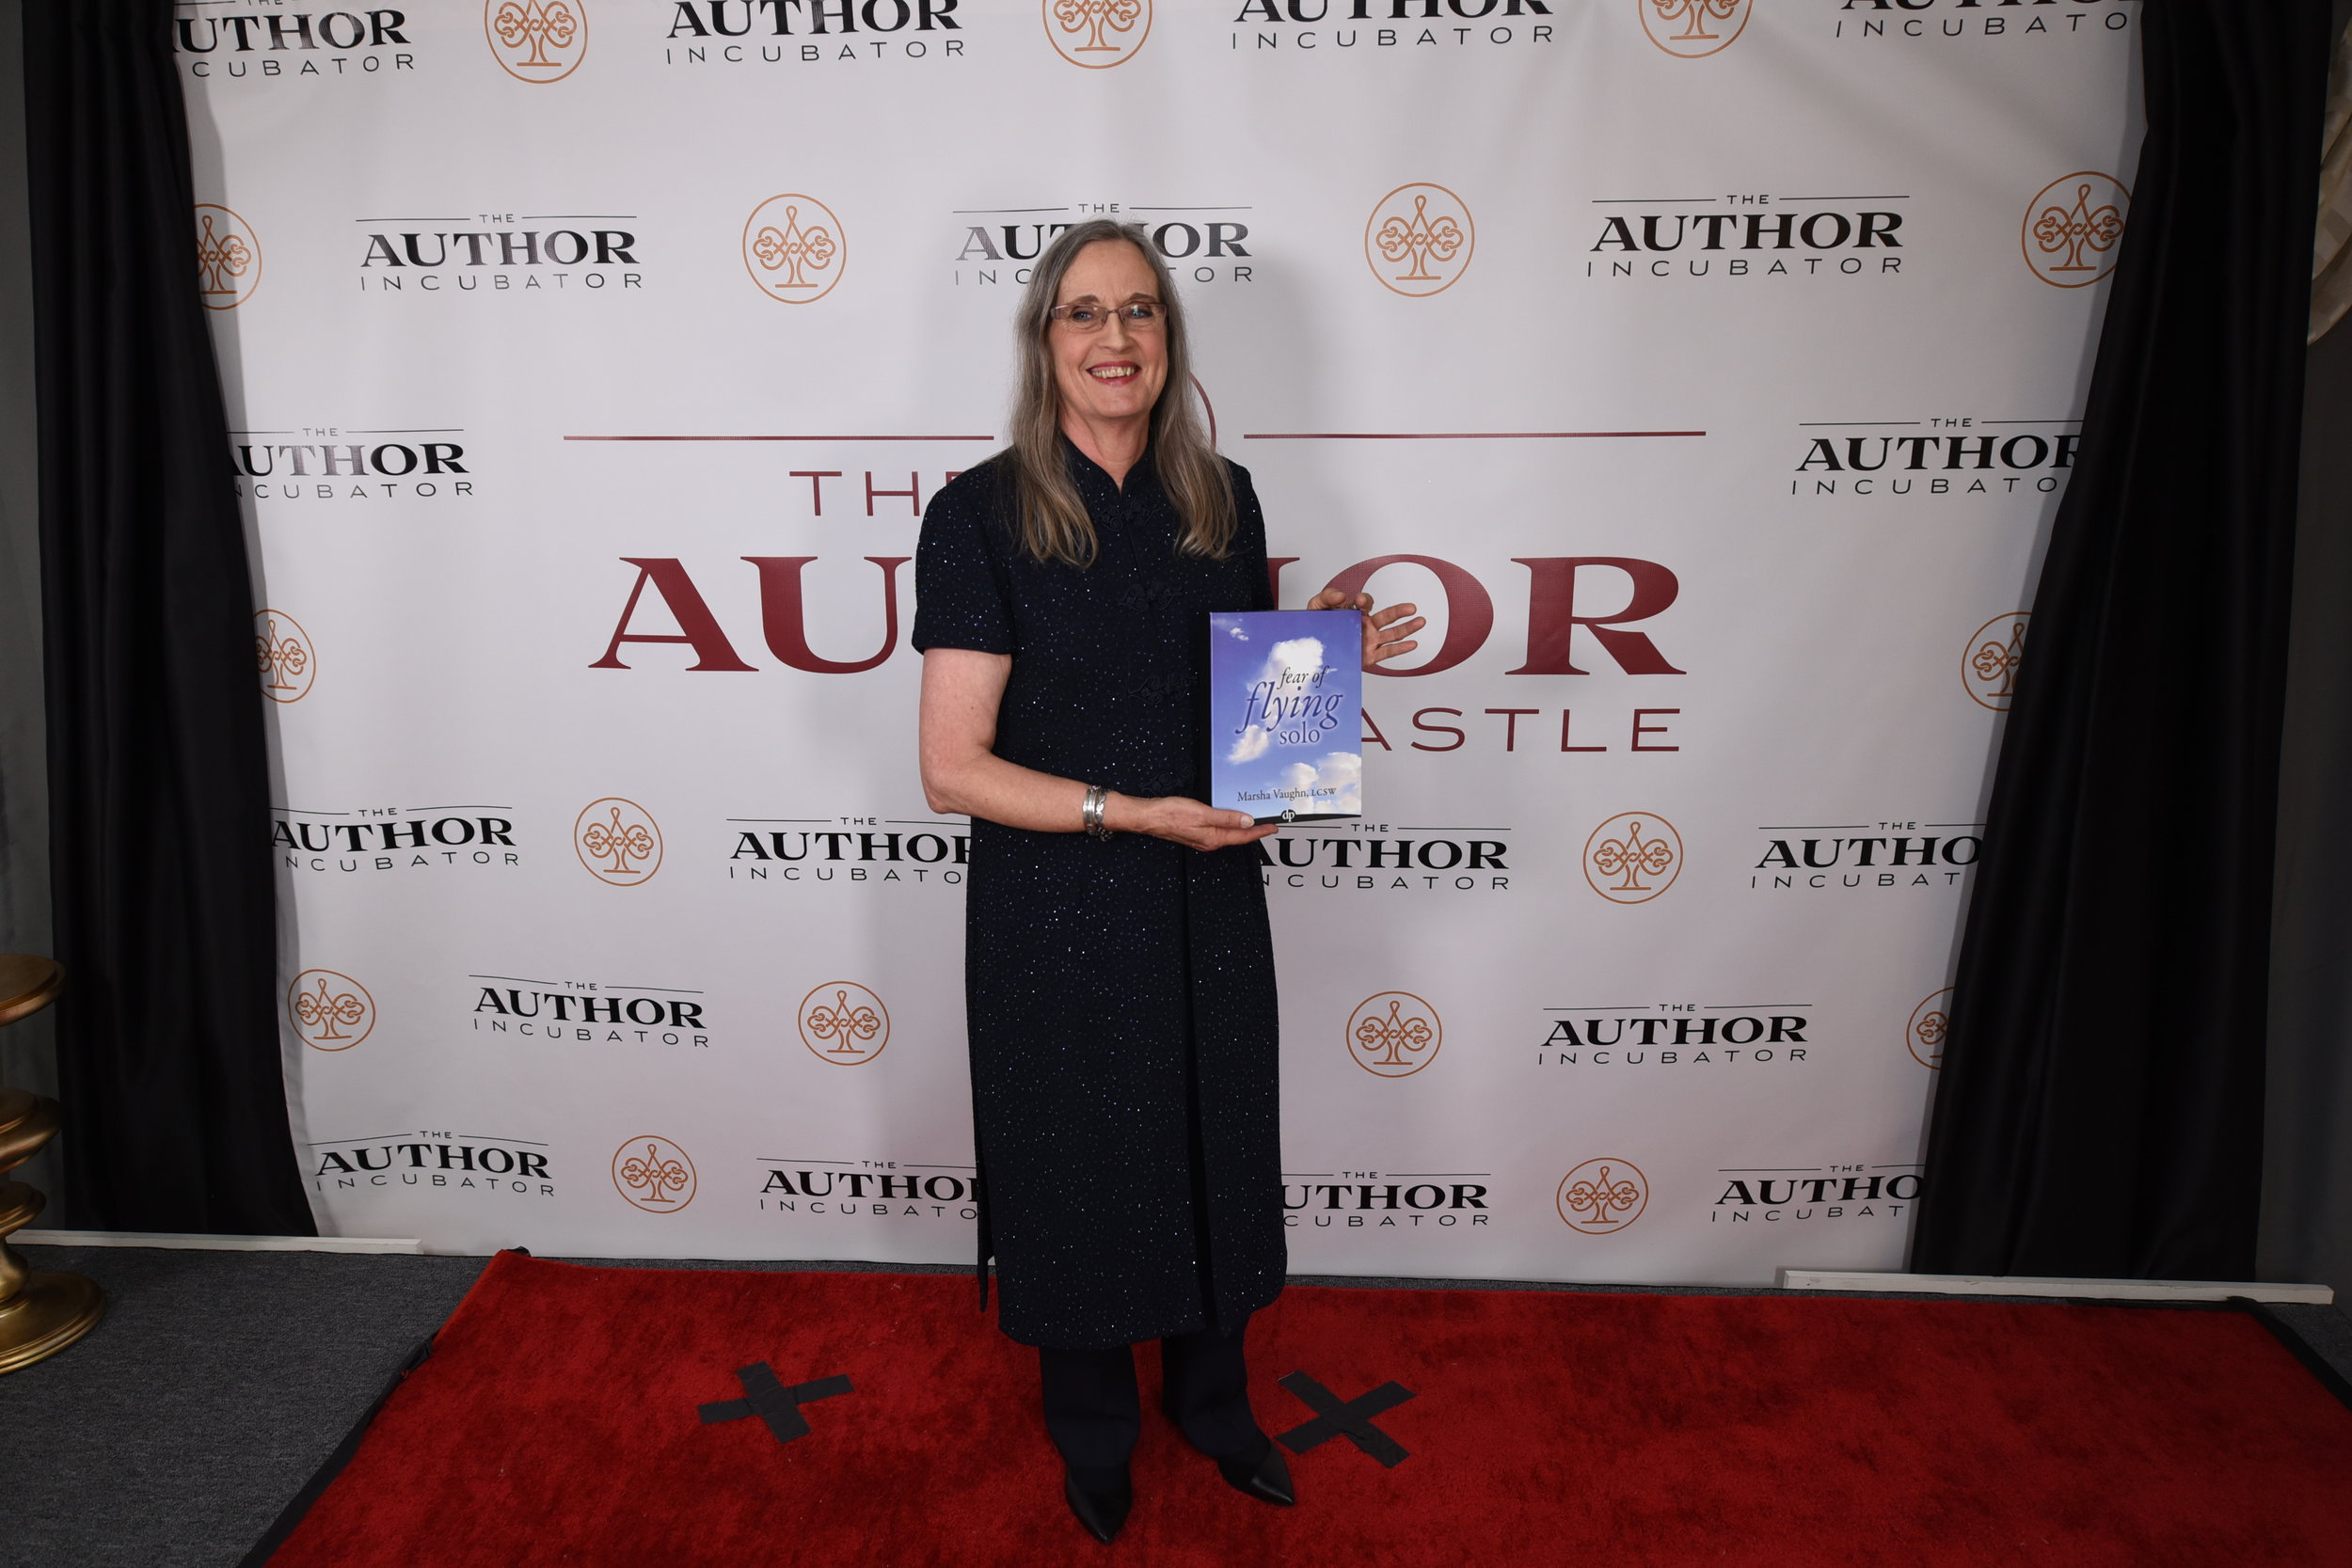 The Red Carpet Launch of my book, Fear of Flying Solo at the Author Castle in McLean, Virginia.